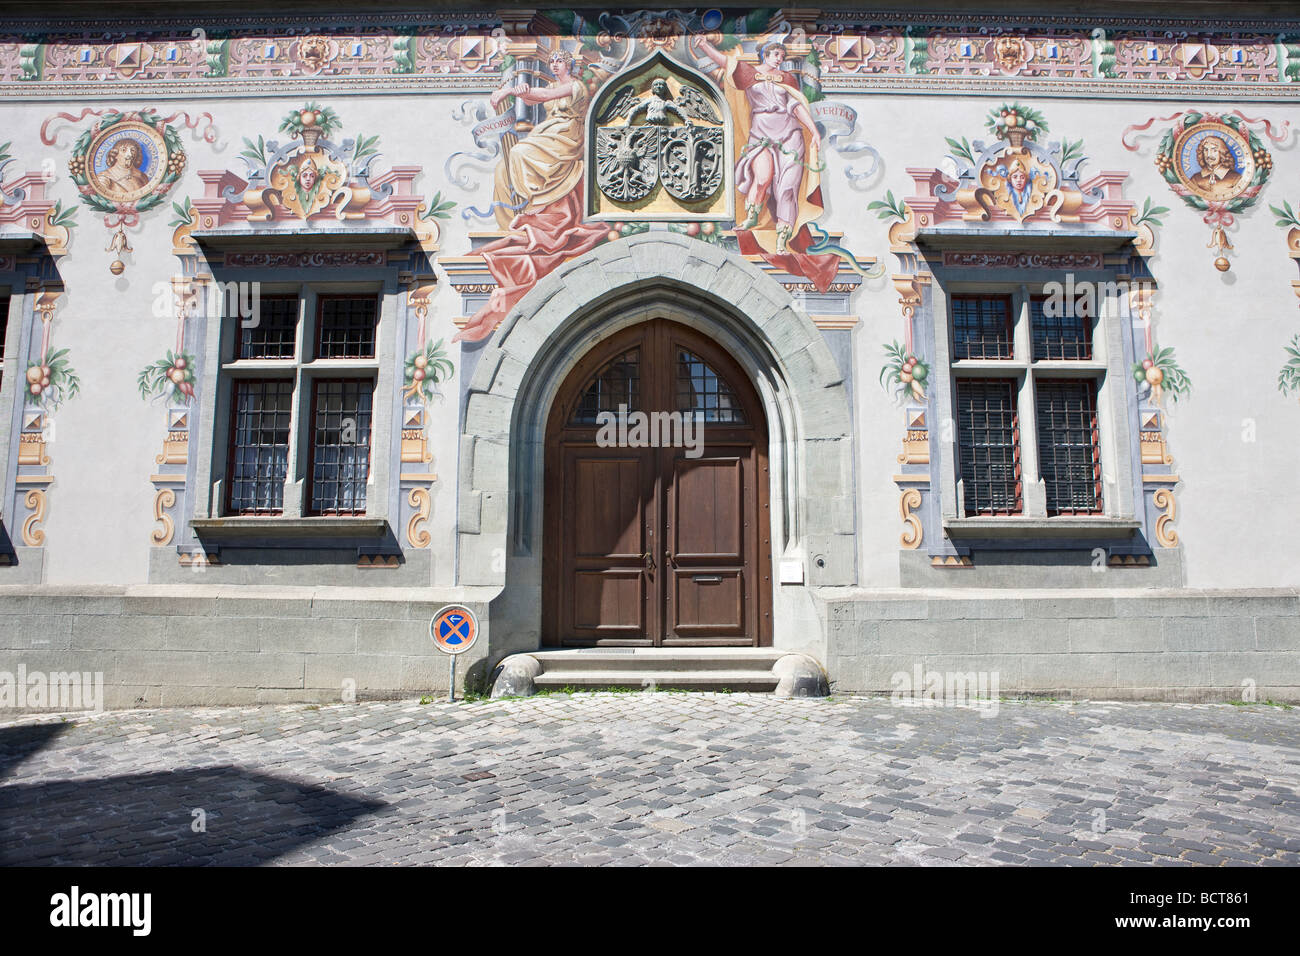 The old town hall in Lindau am Bodensee, Lake Constance, Bavaria, Germany, Europe Stock Photo